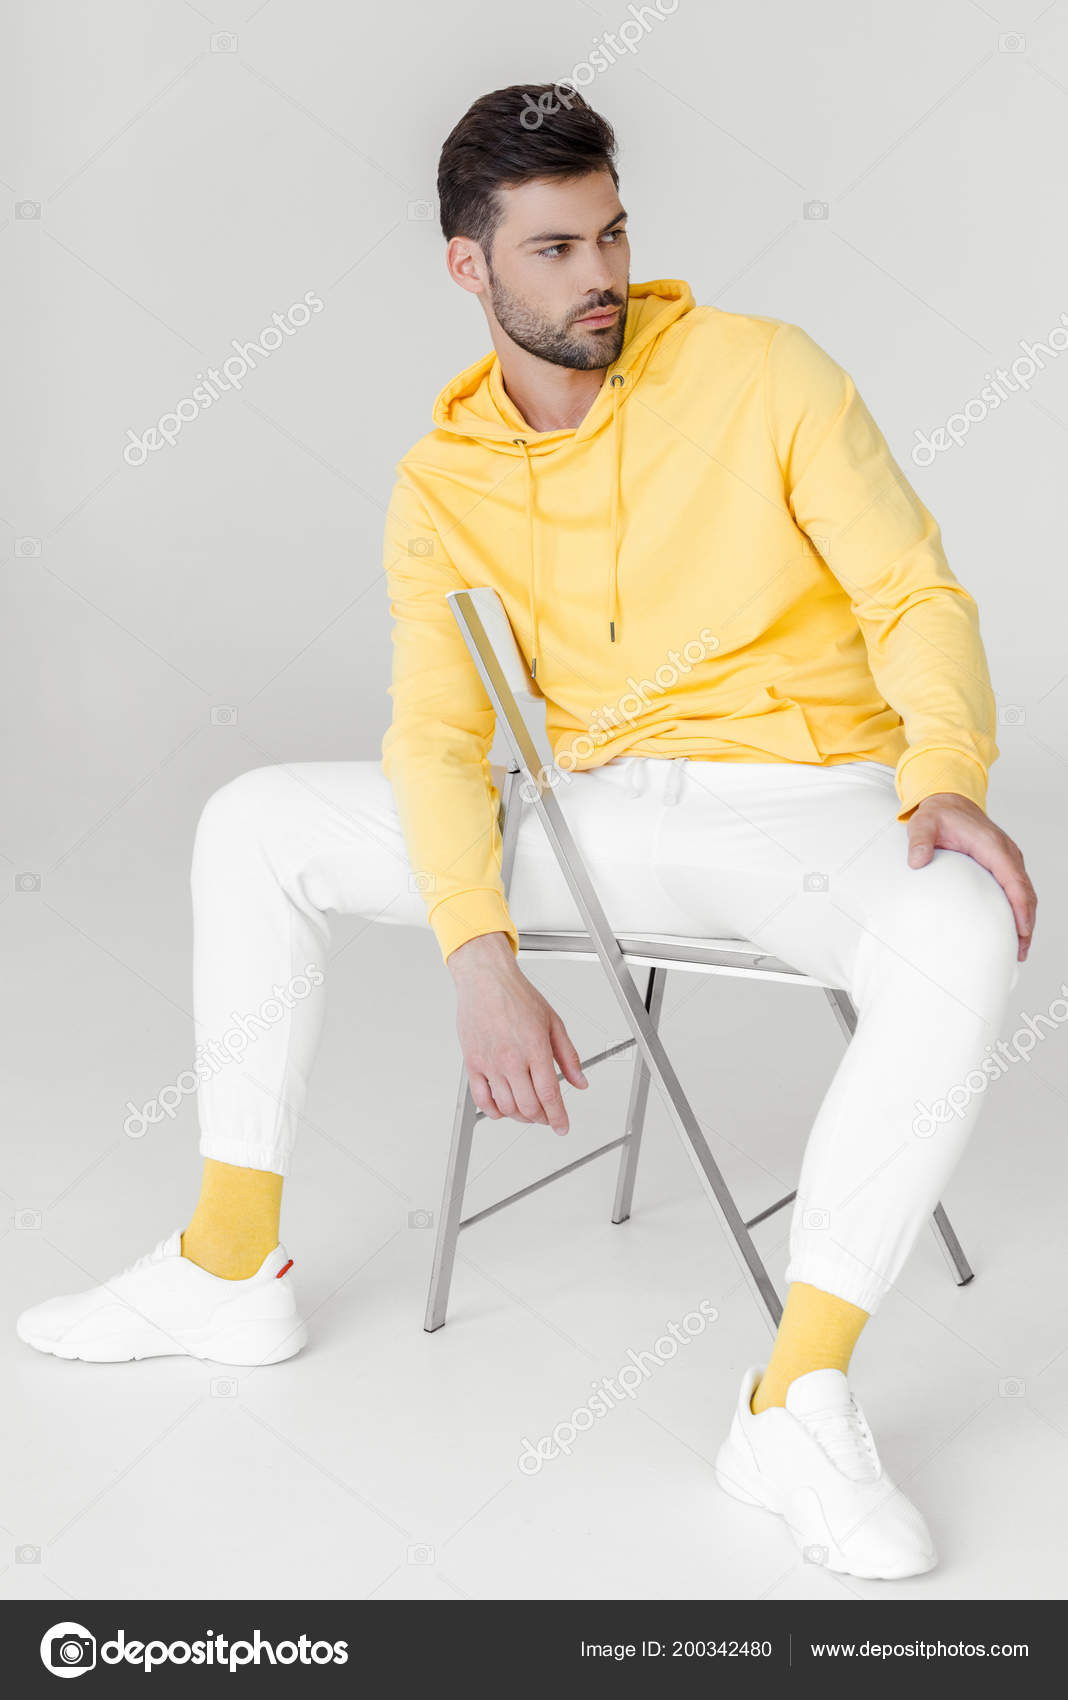 Chair Pants Stylish Young Man Yellow Hoodie White Pants Sitting Chair Looking